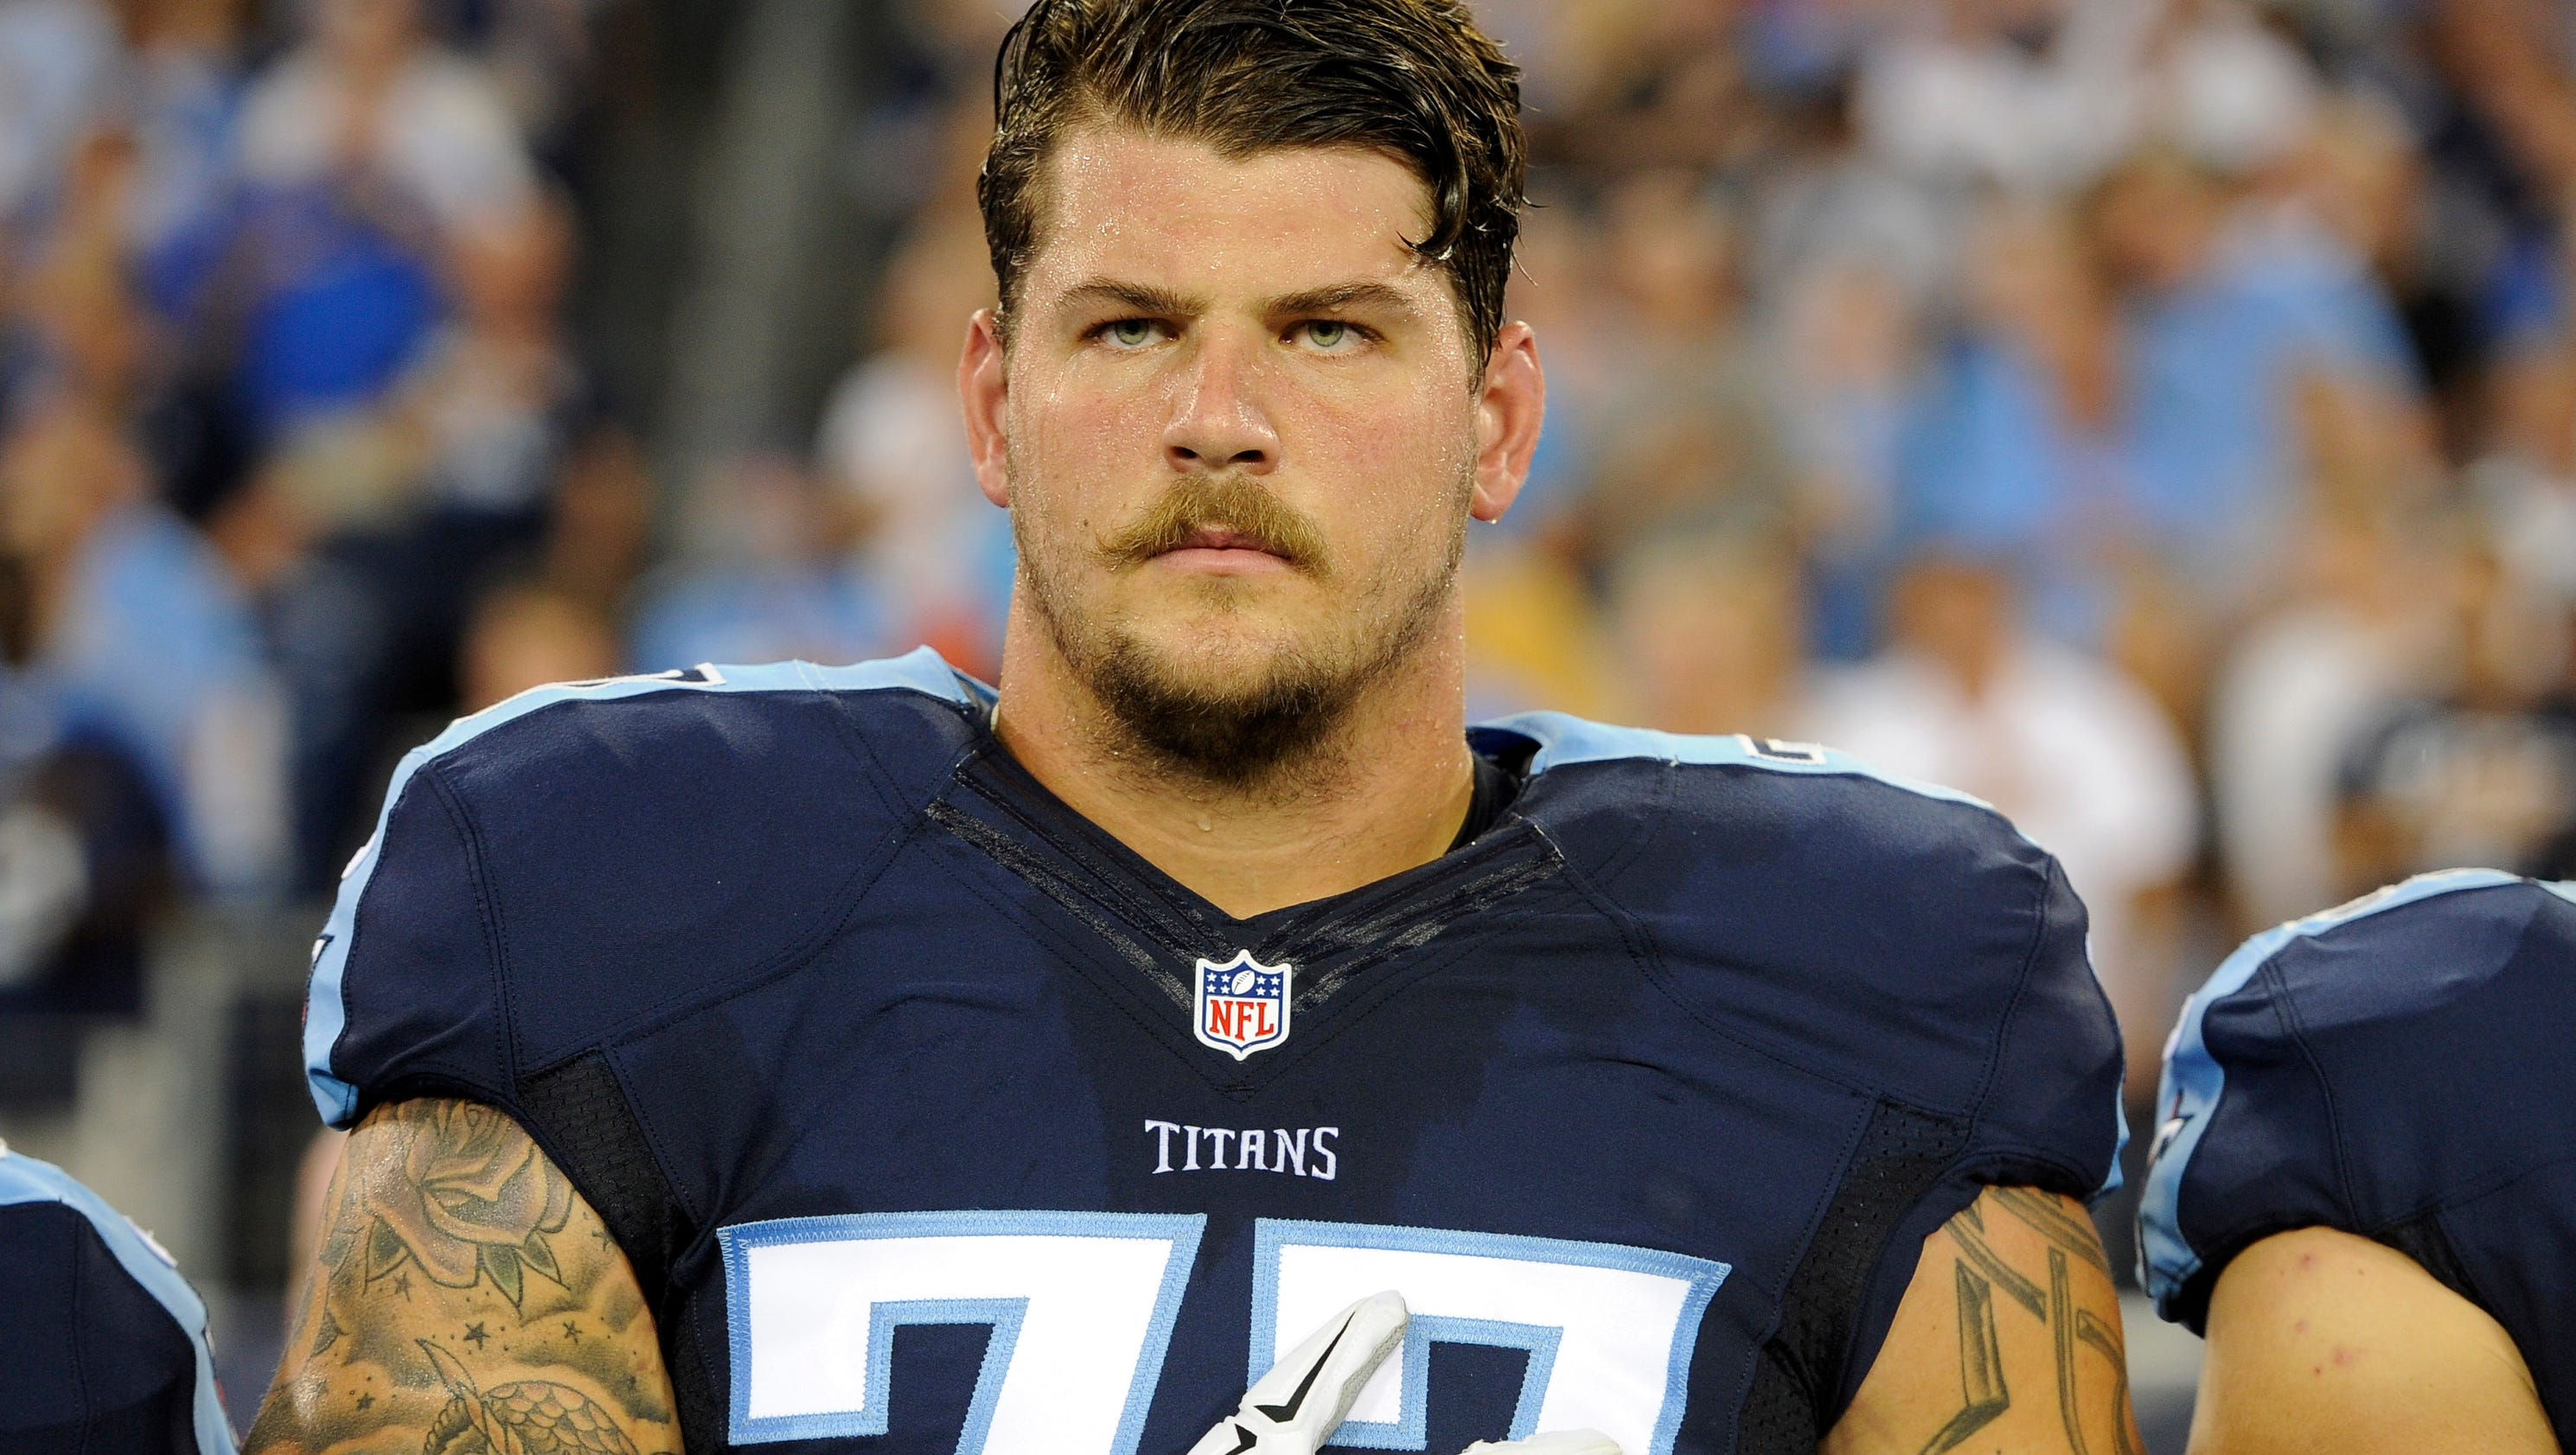 Titans Taylor Lewan Still Loses It But Has Found His Game